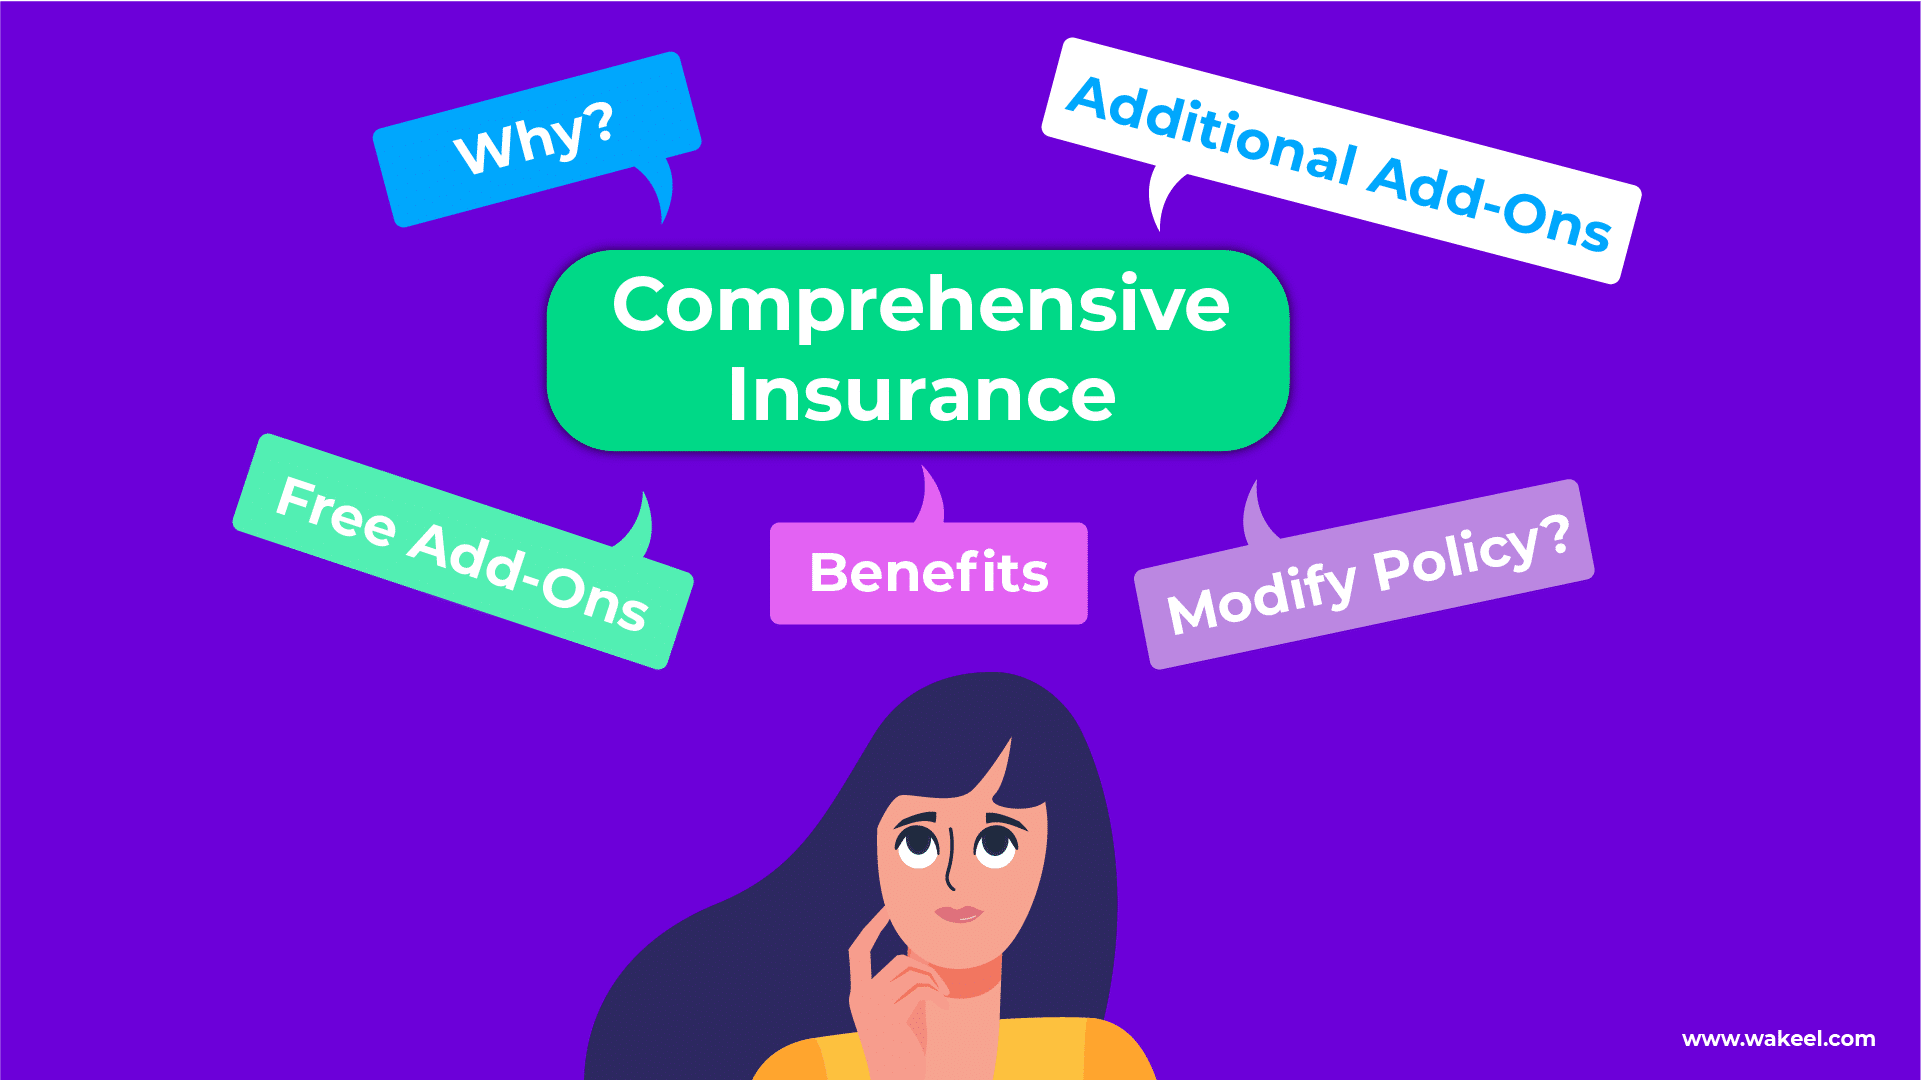 Guide to Comprehensive Insurance Cover & Add-ons